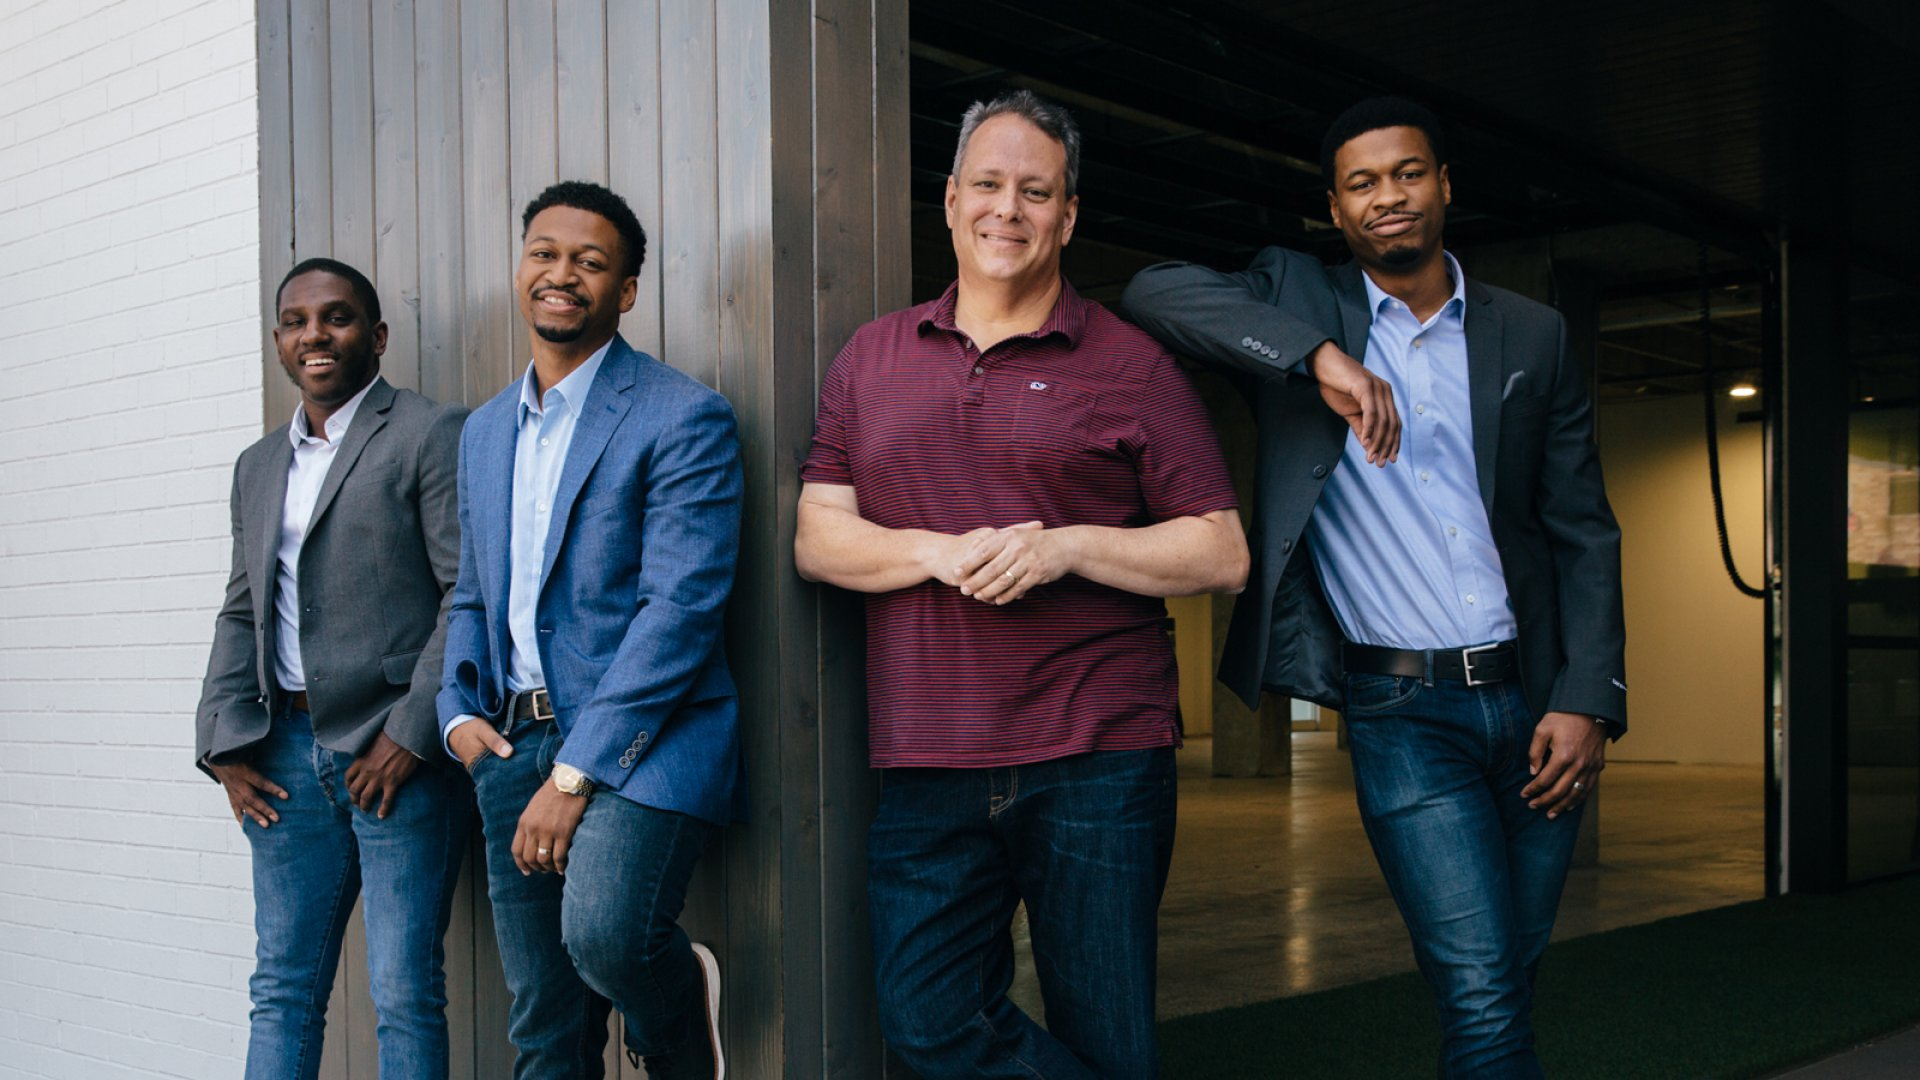 From left: Keran Smith, Lyfe Marketing CMO, Sean Standberry, Lyfe Marketing CEO, Rob Frohwein, Kabbage CEO, and Sherman Standberry, Lyfe Marketing CFO.